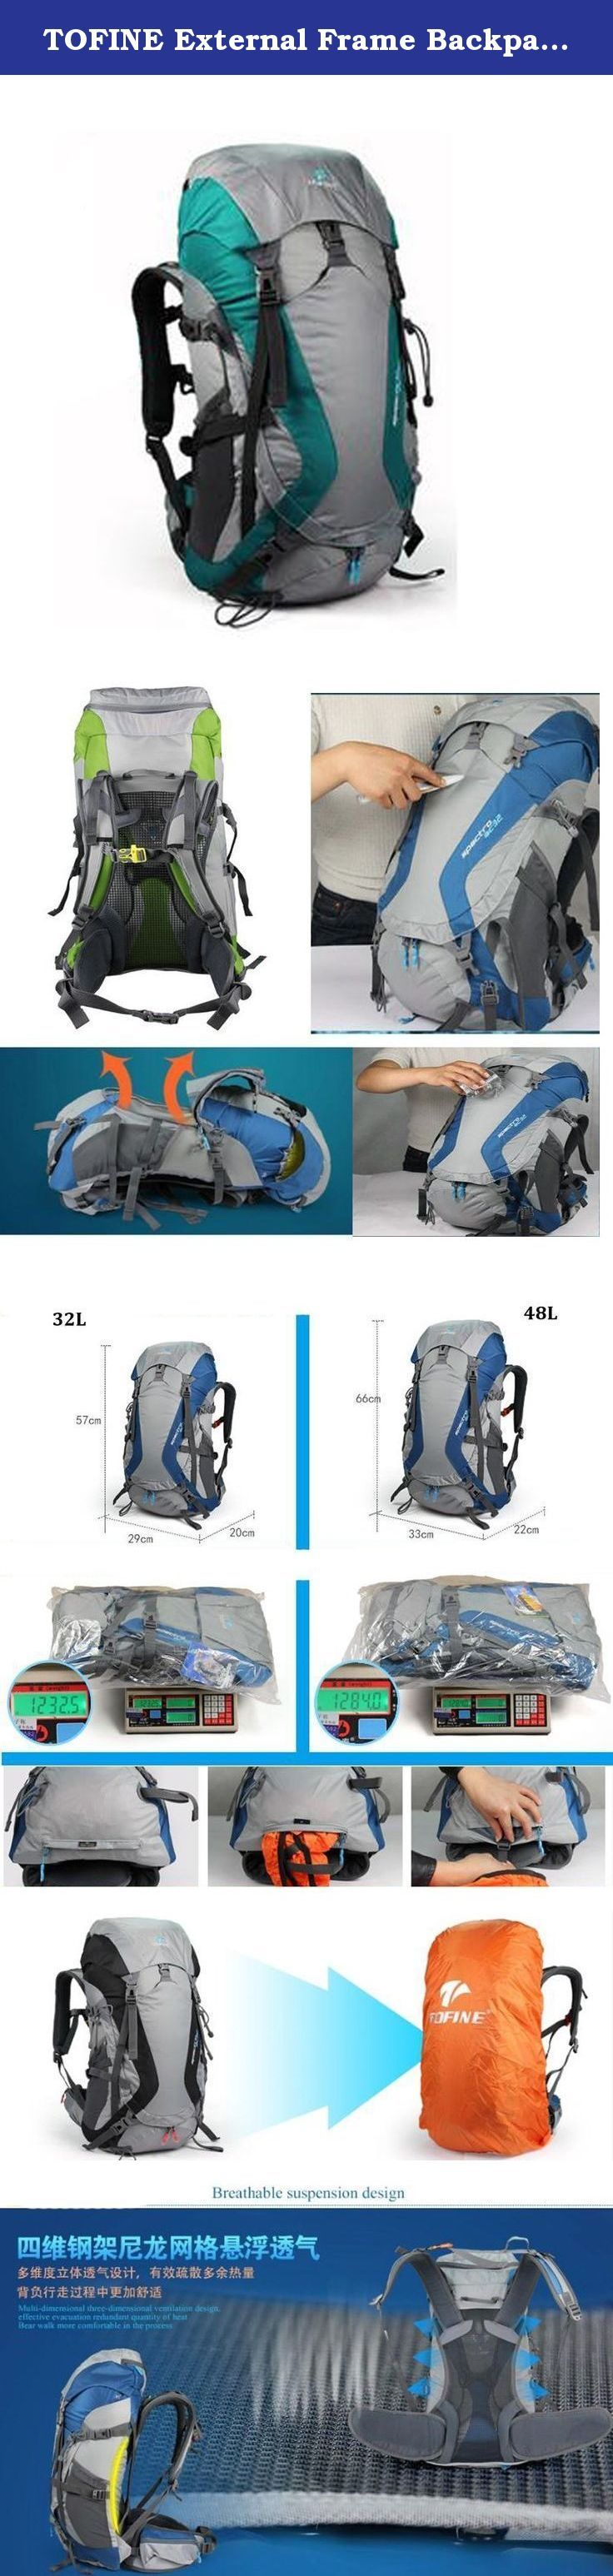 TOFINE External Frame Backpack with Padded Strap Survival Whistle Buckle Hiking Day Backpacking with Rain Cover Tiffany 48 Liter. Tofine professional Backpack is ideal for various activities such as Climbing, Hiking, Holidays, Trveling and so much more. This hiking backpack is equipped with Thick shoulder straps for added comfort. External and external pockets are available and side pockets give you plenty of storage space for your gear. A waterproof removable cover is included. The main...